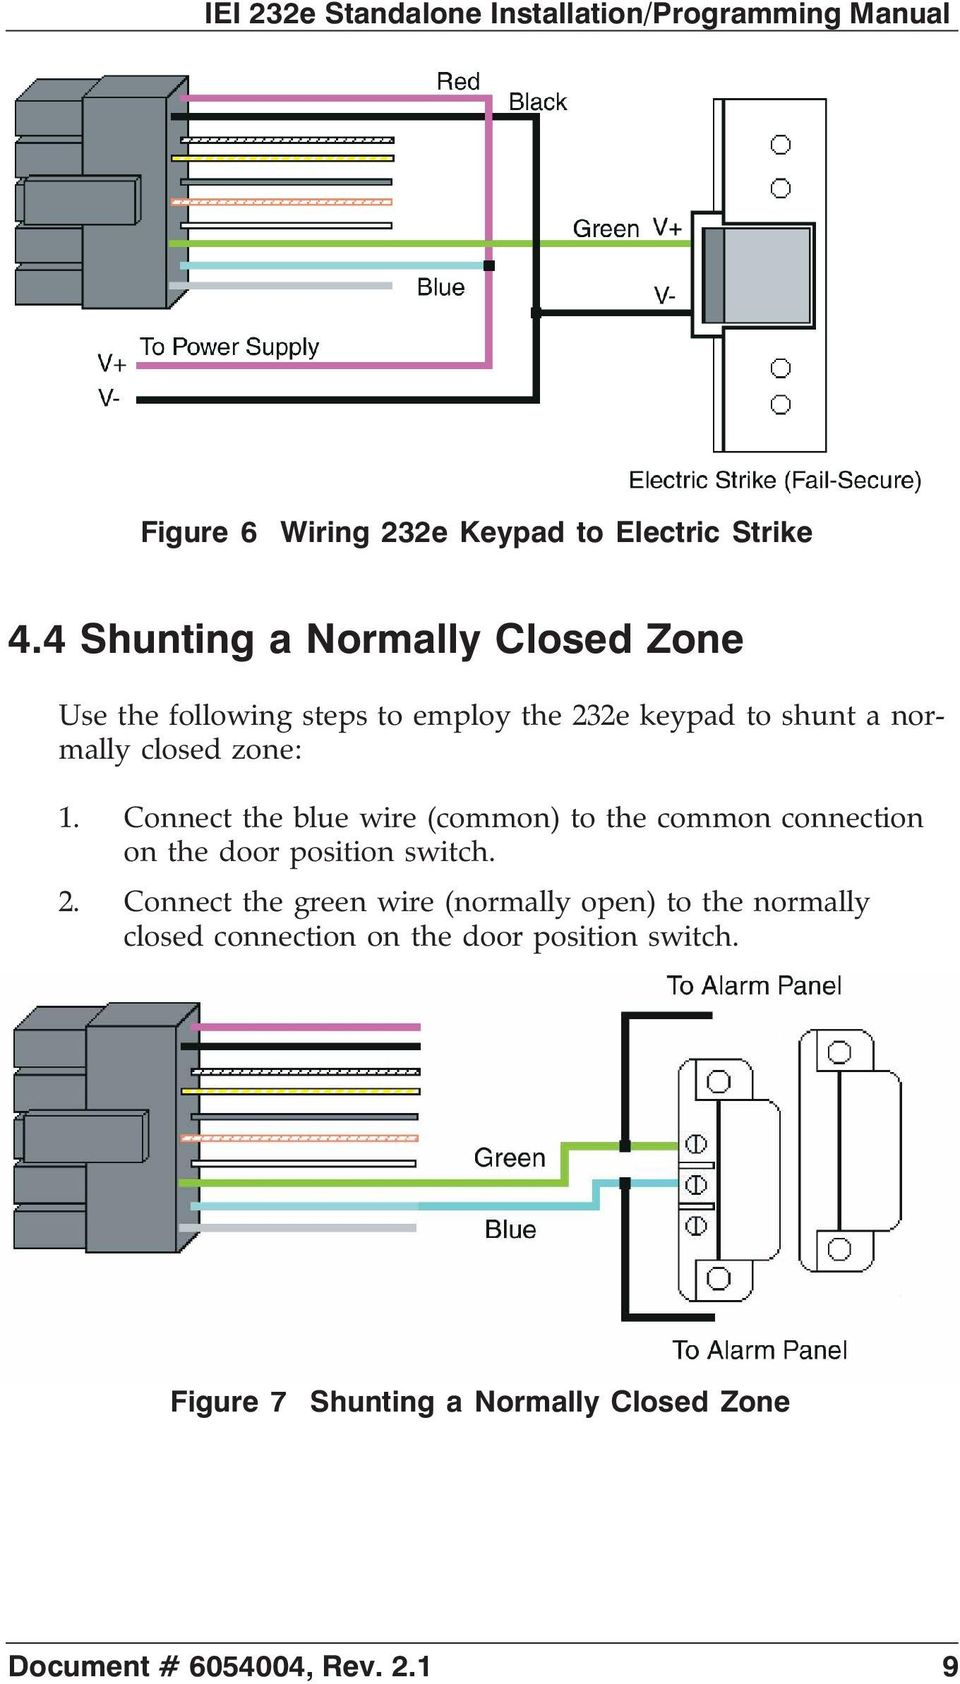 Iei 232e Standalone Tm Keypad Installation Programming Manual Pdf Minimumcomponent Phono Amp Circuit Diagram Tradeoficcom Connect The Blue Wire Common To Connection On Door